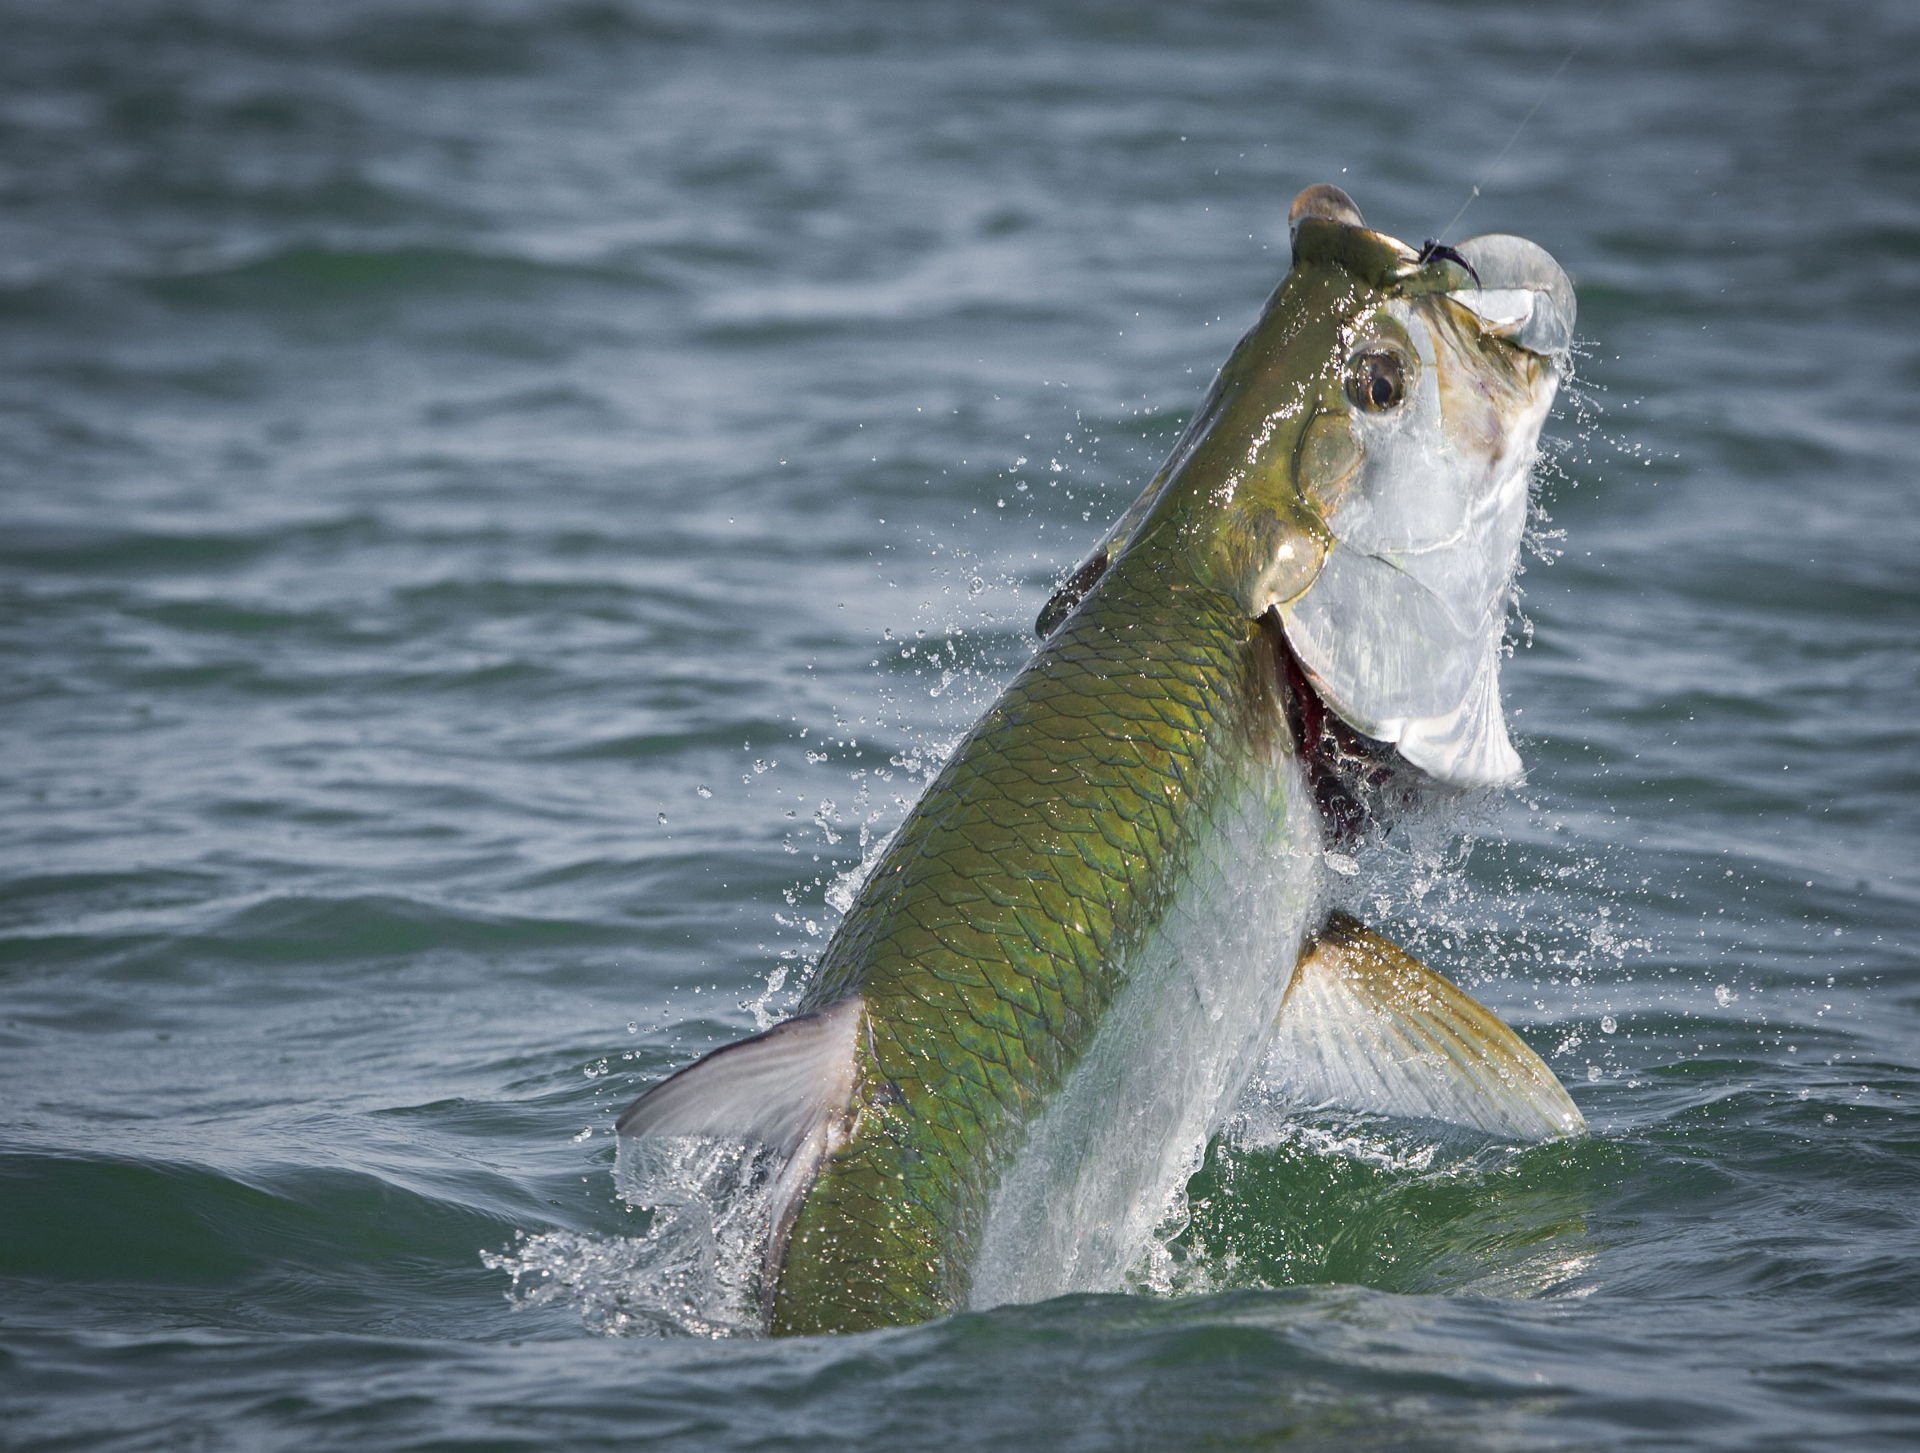 Florida tarpon fishing photo gallery swe for Florida tarpon fishing